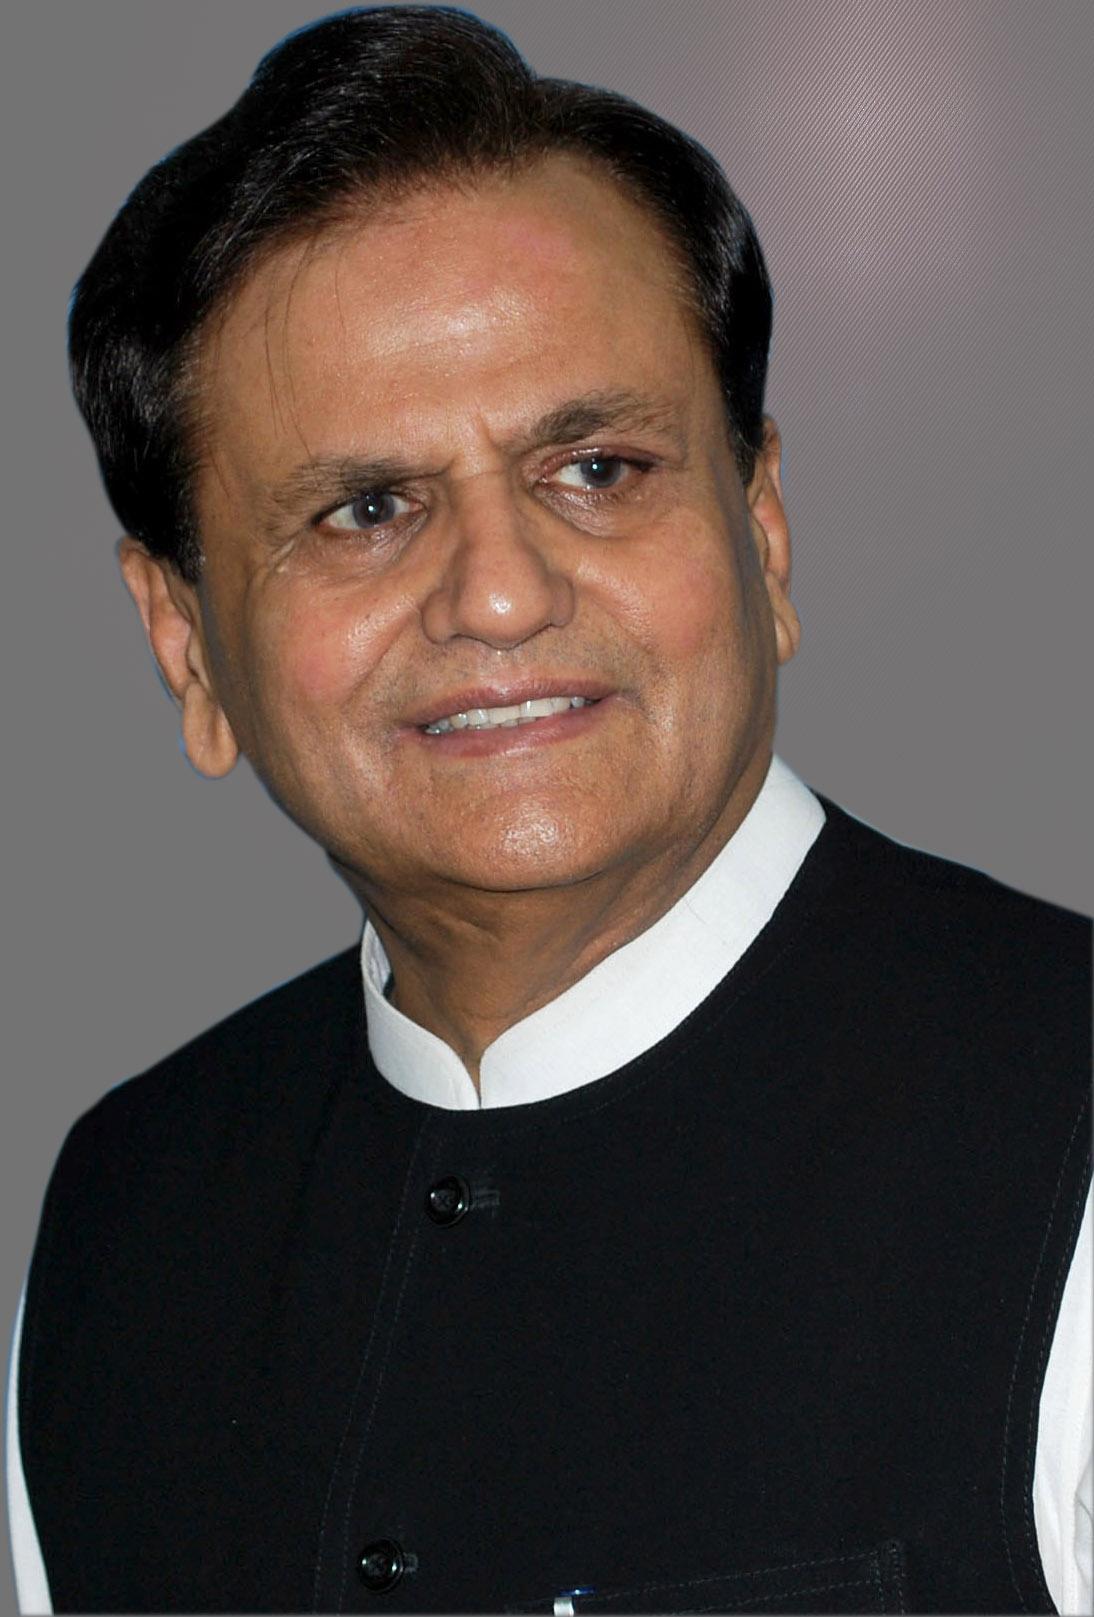 PM Modi expresses grief over the demise of Ahmed Patel